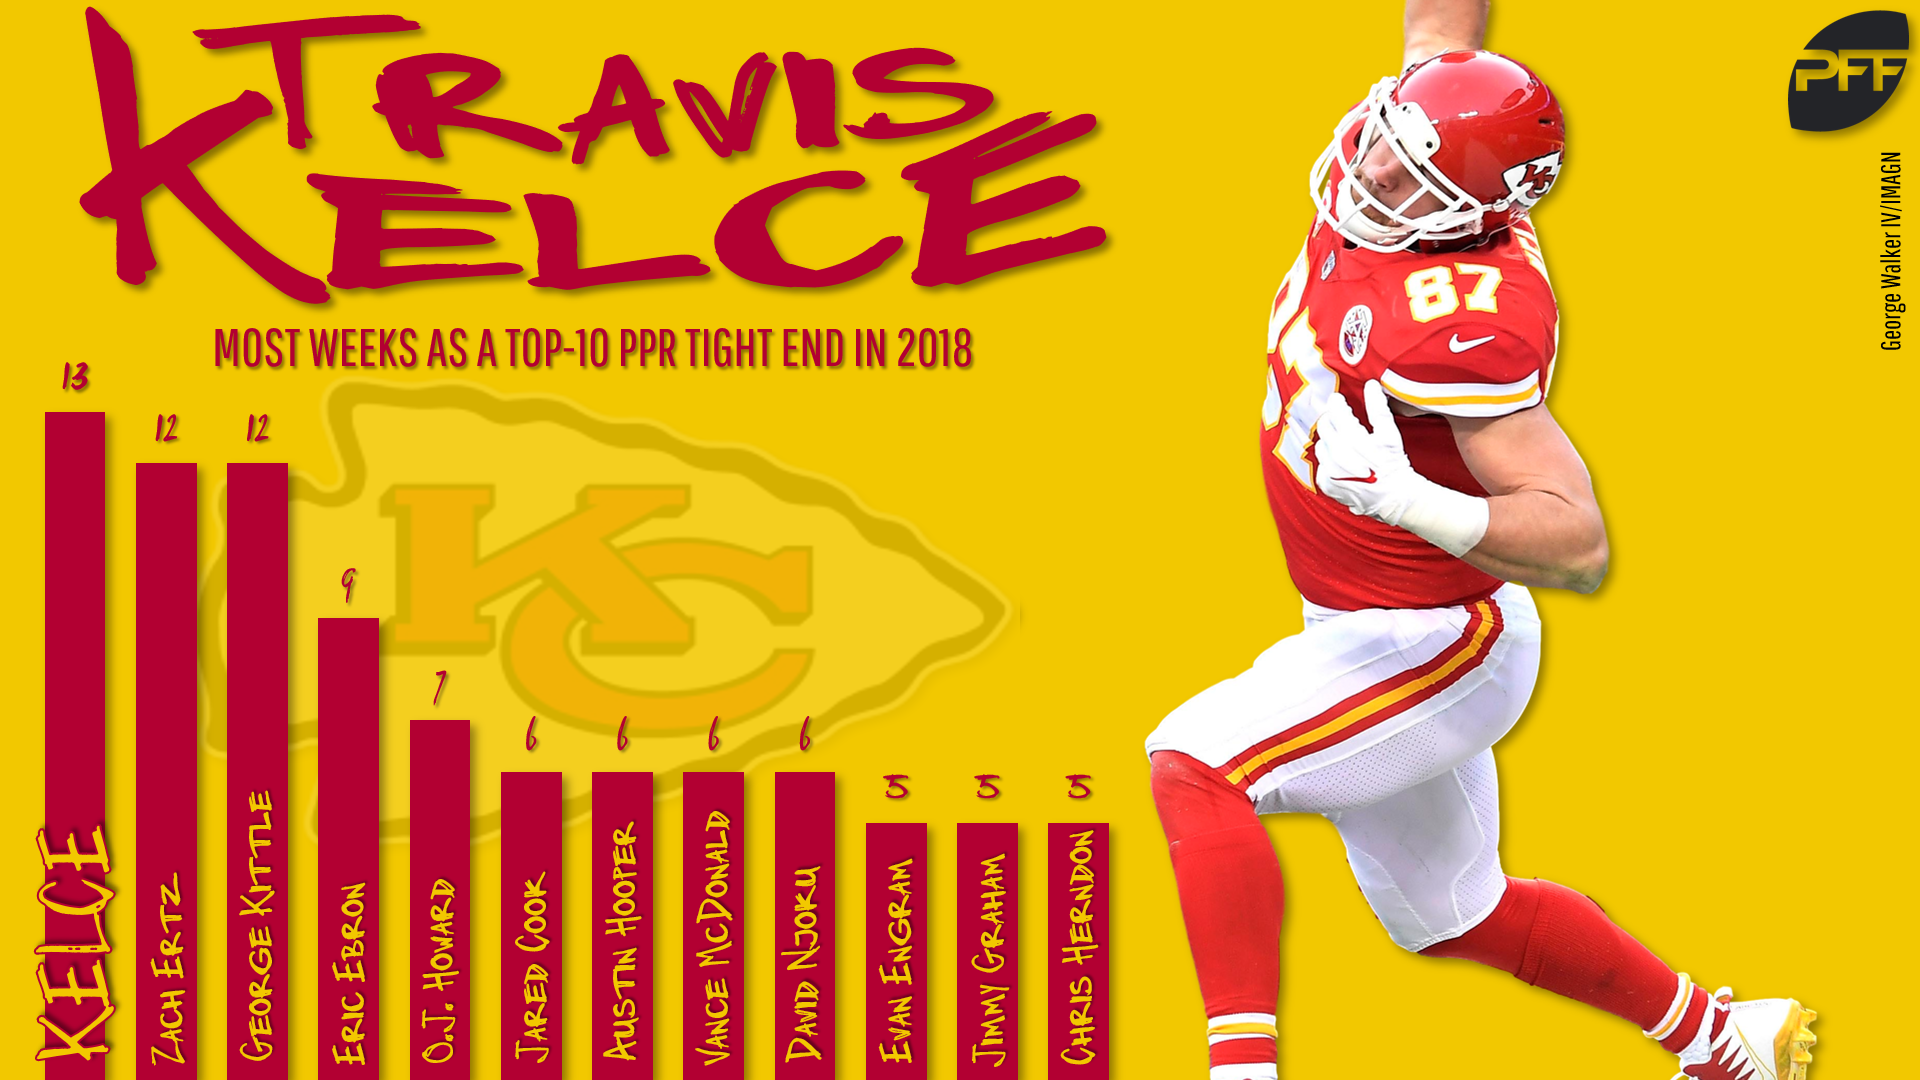 2b8417cb13f The key to Kelce s fantasy dominance has been consistency. He finished  inside the top 10 at tight end in 13 of his 16 contests this past season.